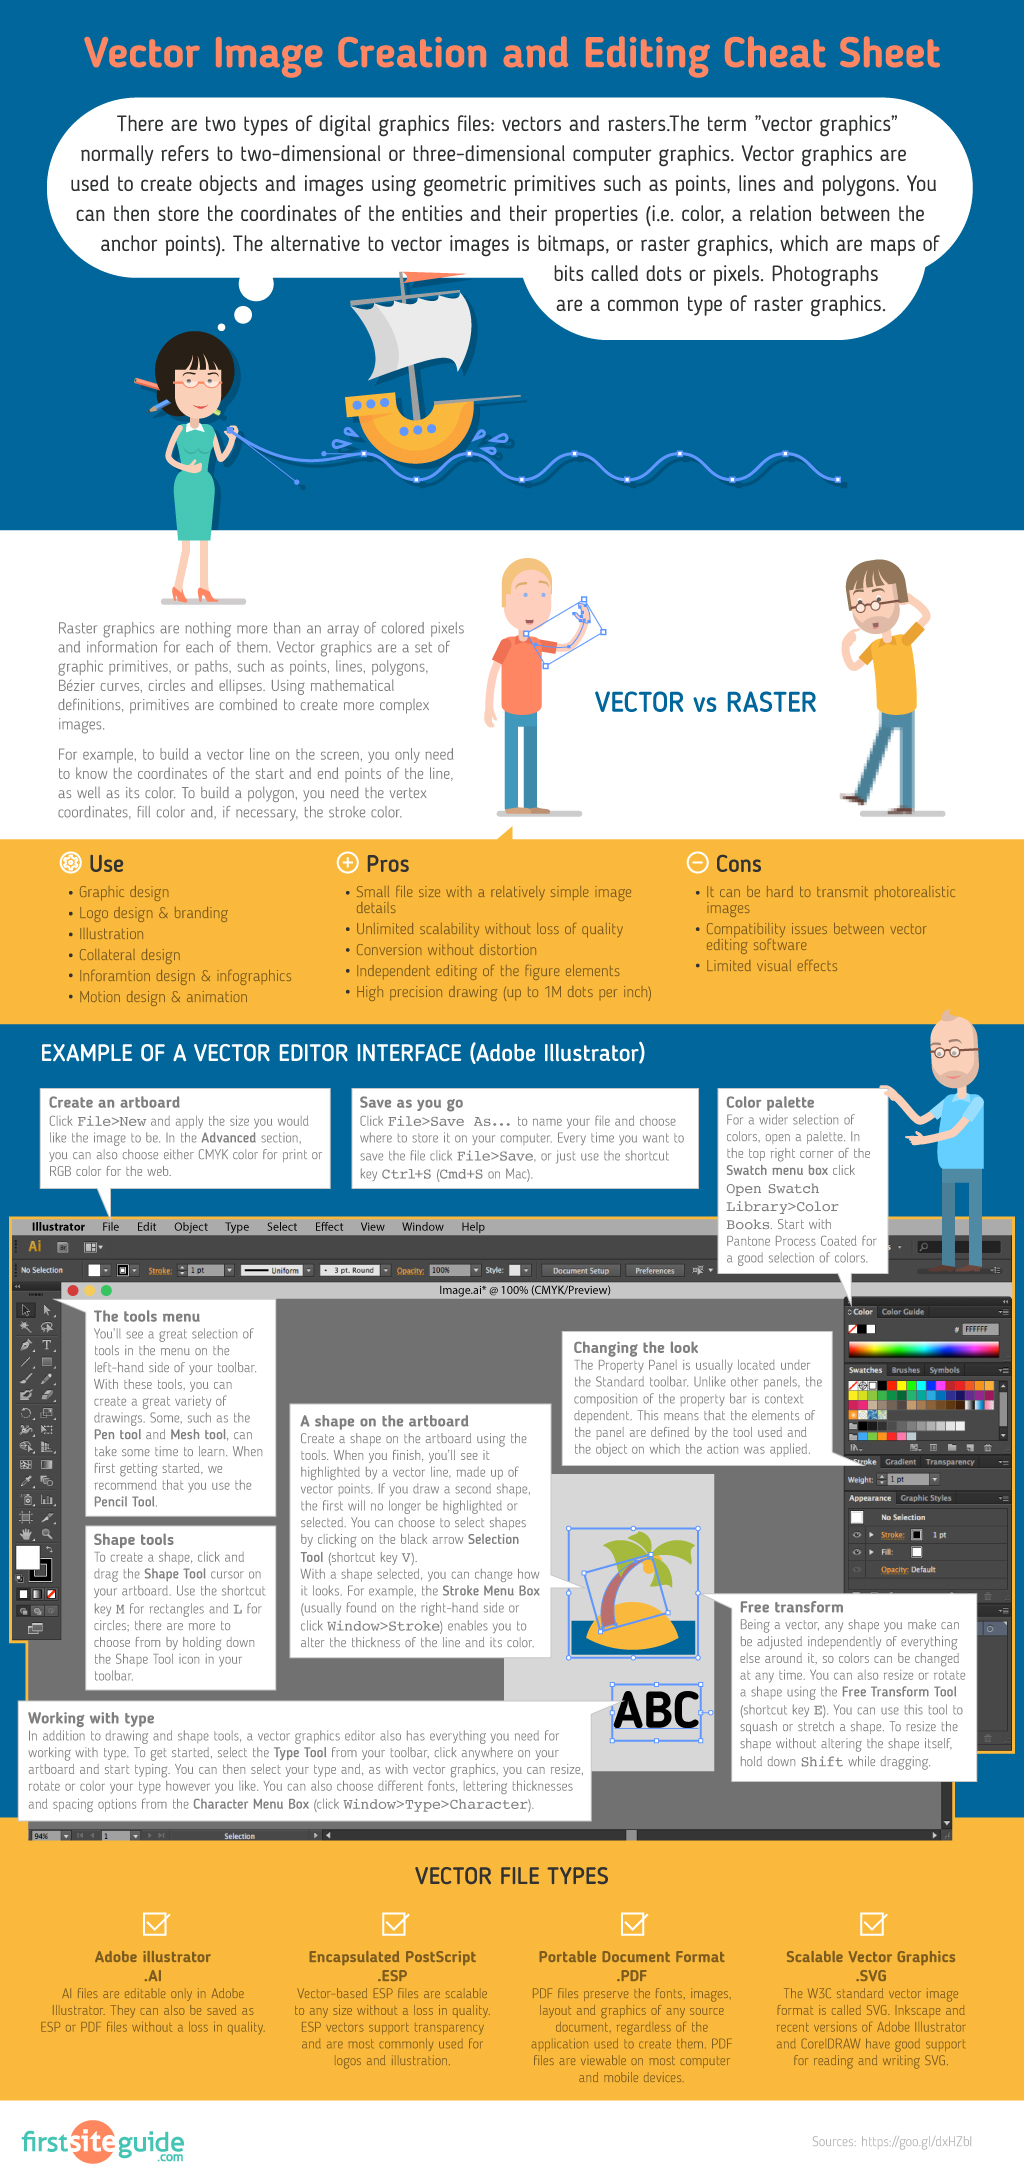 vector image creation cheat sheet